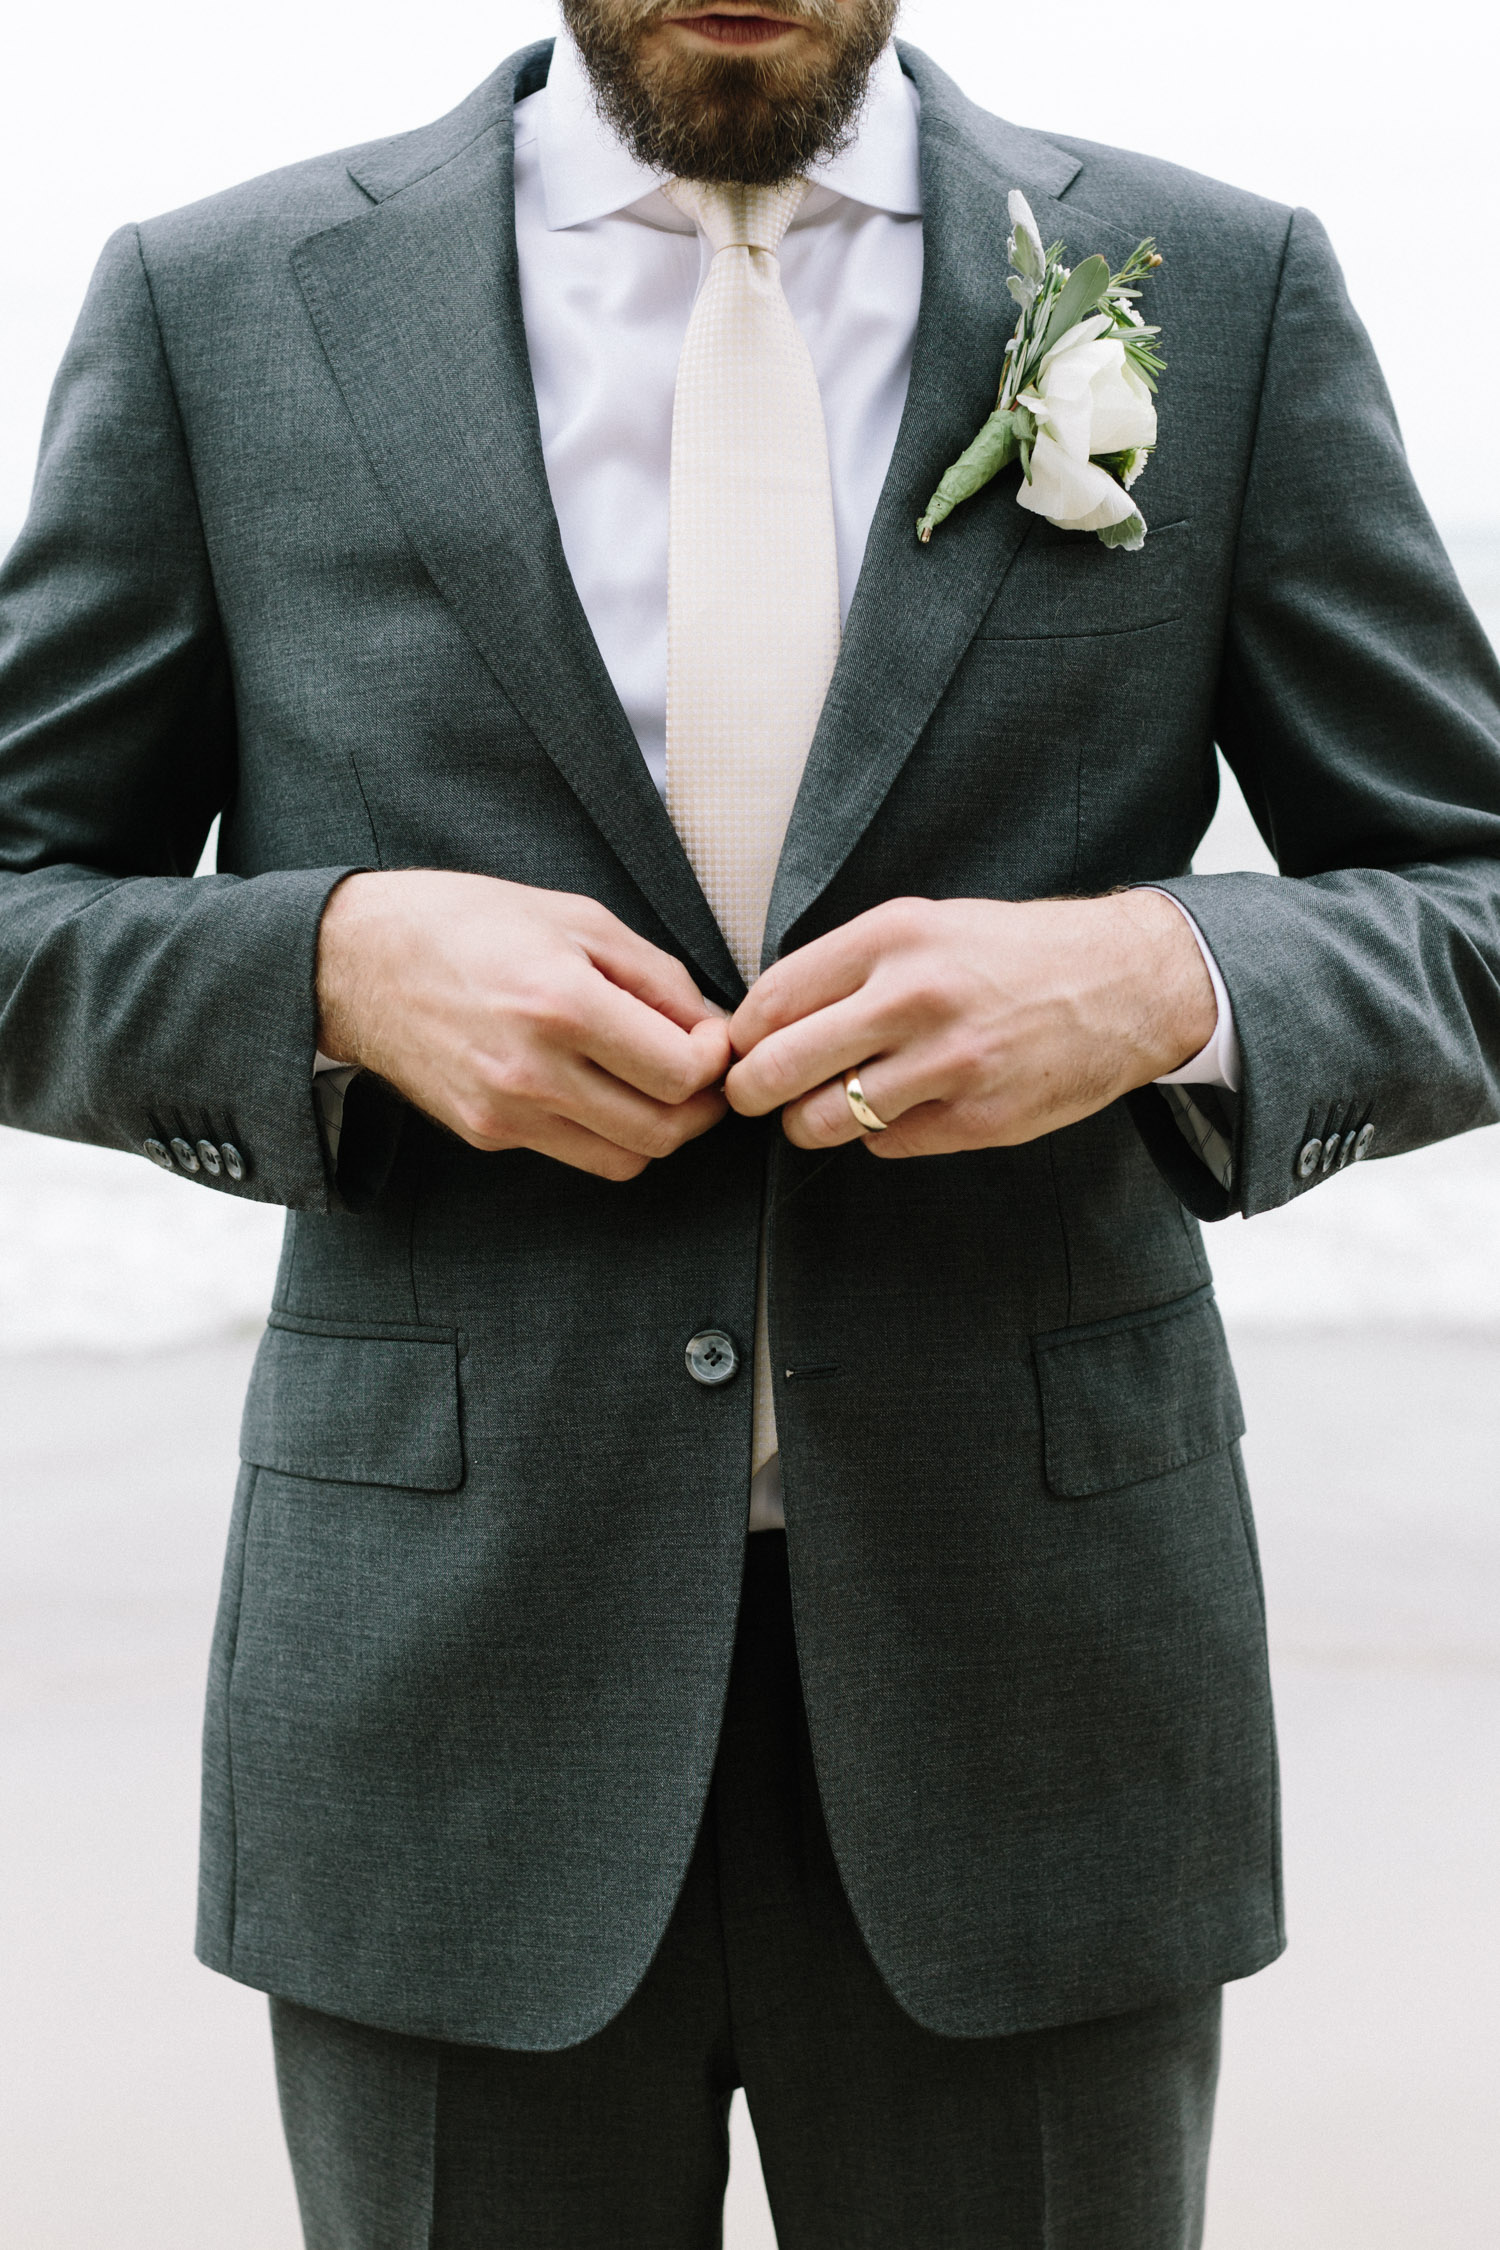 A groom's hands and gold wedding band are seen as he buttons up his grey suit jacket on a Lake Michigan beach